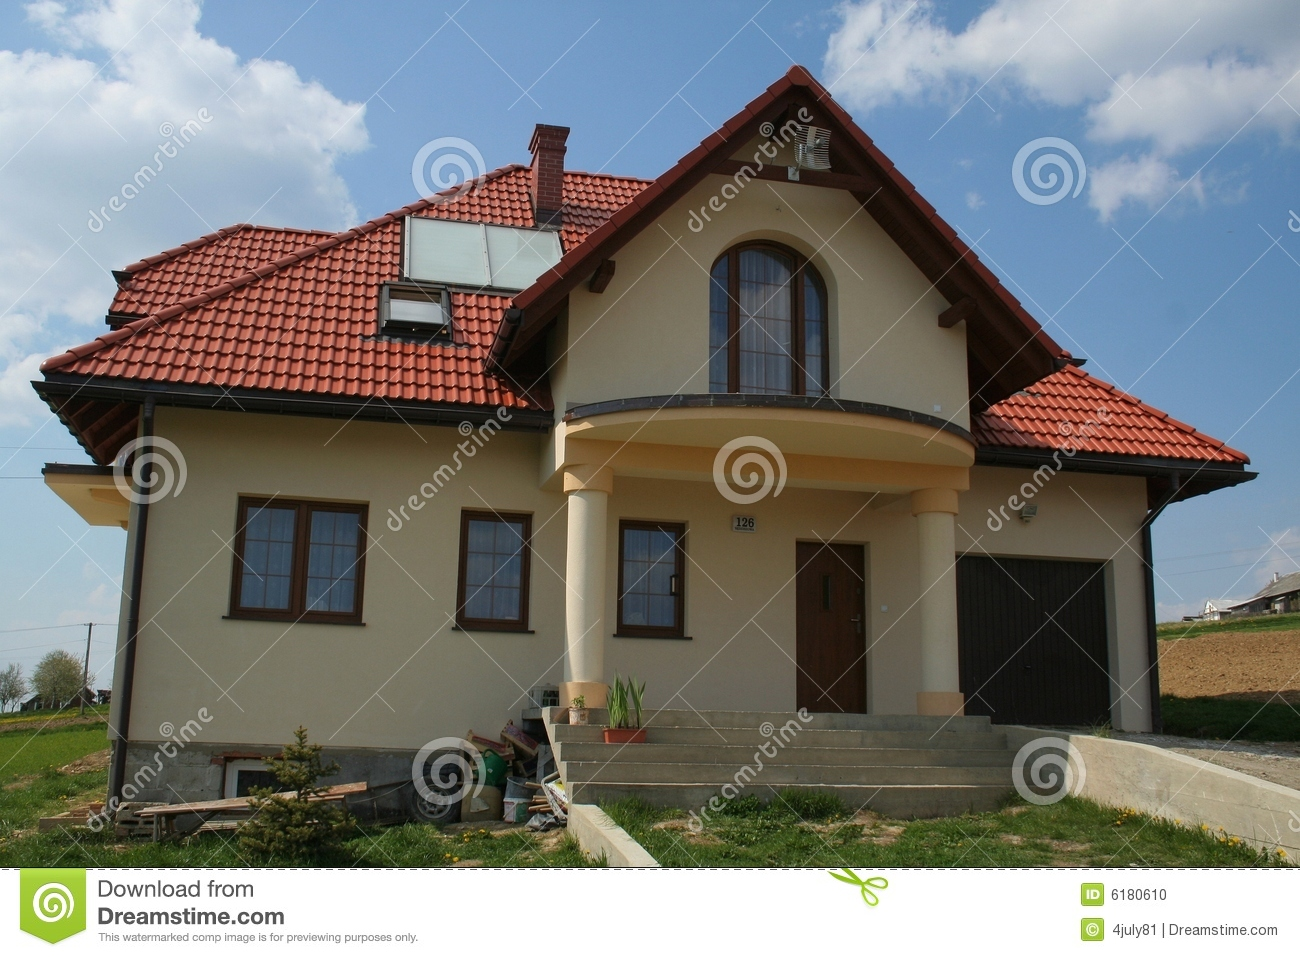 House With Red Roof Stock Photo Image 6180610